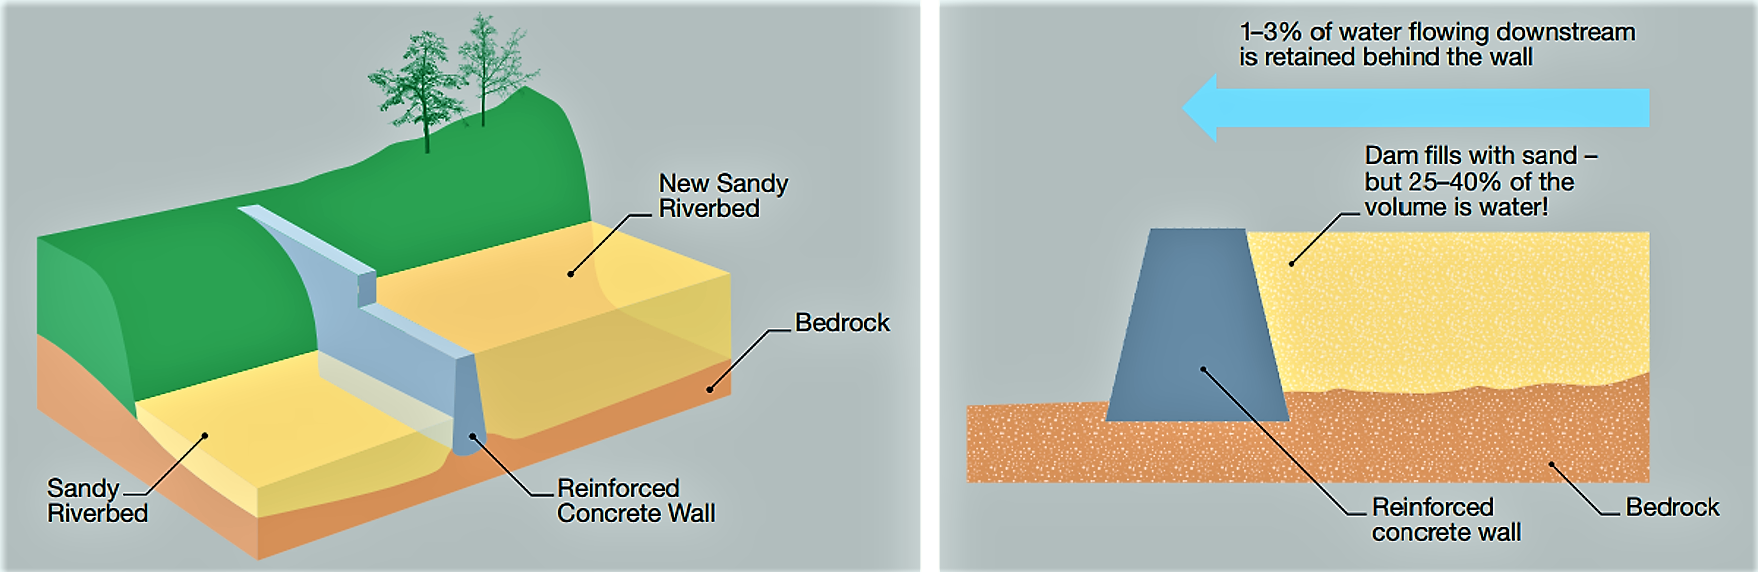 Left: Schematic cross-section of a sand dam. Right: Sand accumulates until the dam is completely full of sand up to the spillway. Water is stored within the sand, protected and filtered, making up to 40 % of the total volume